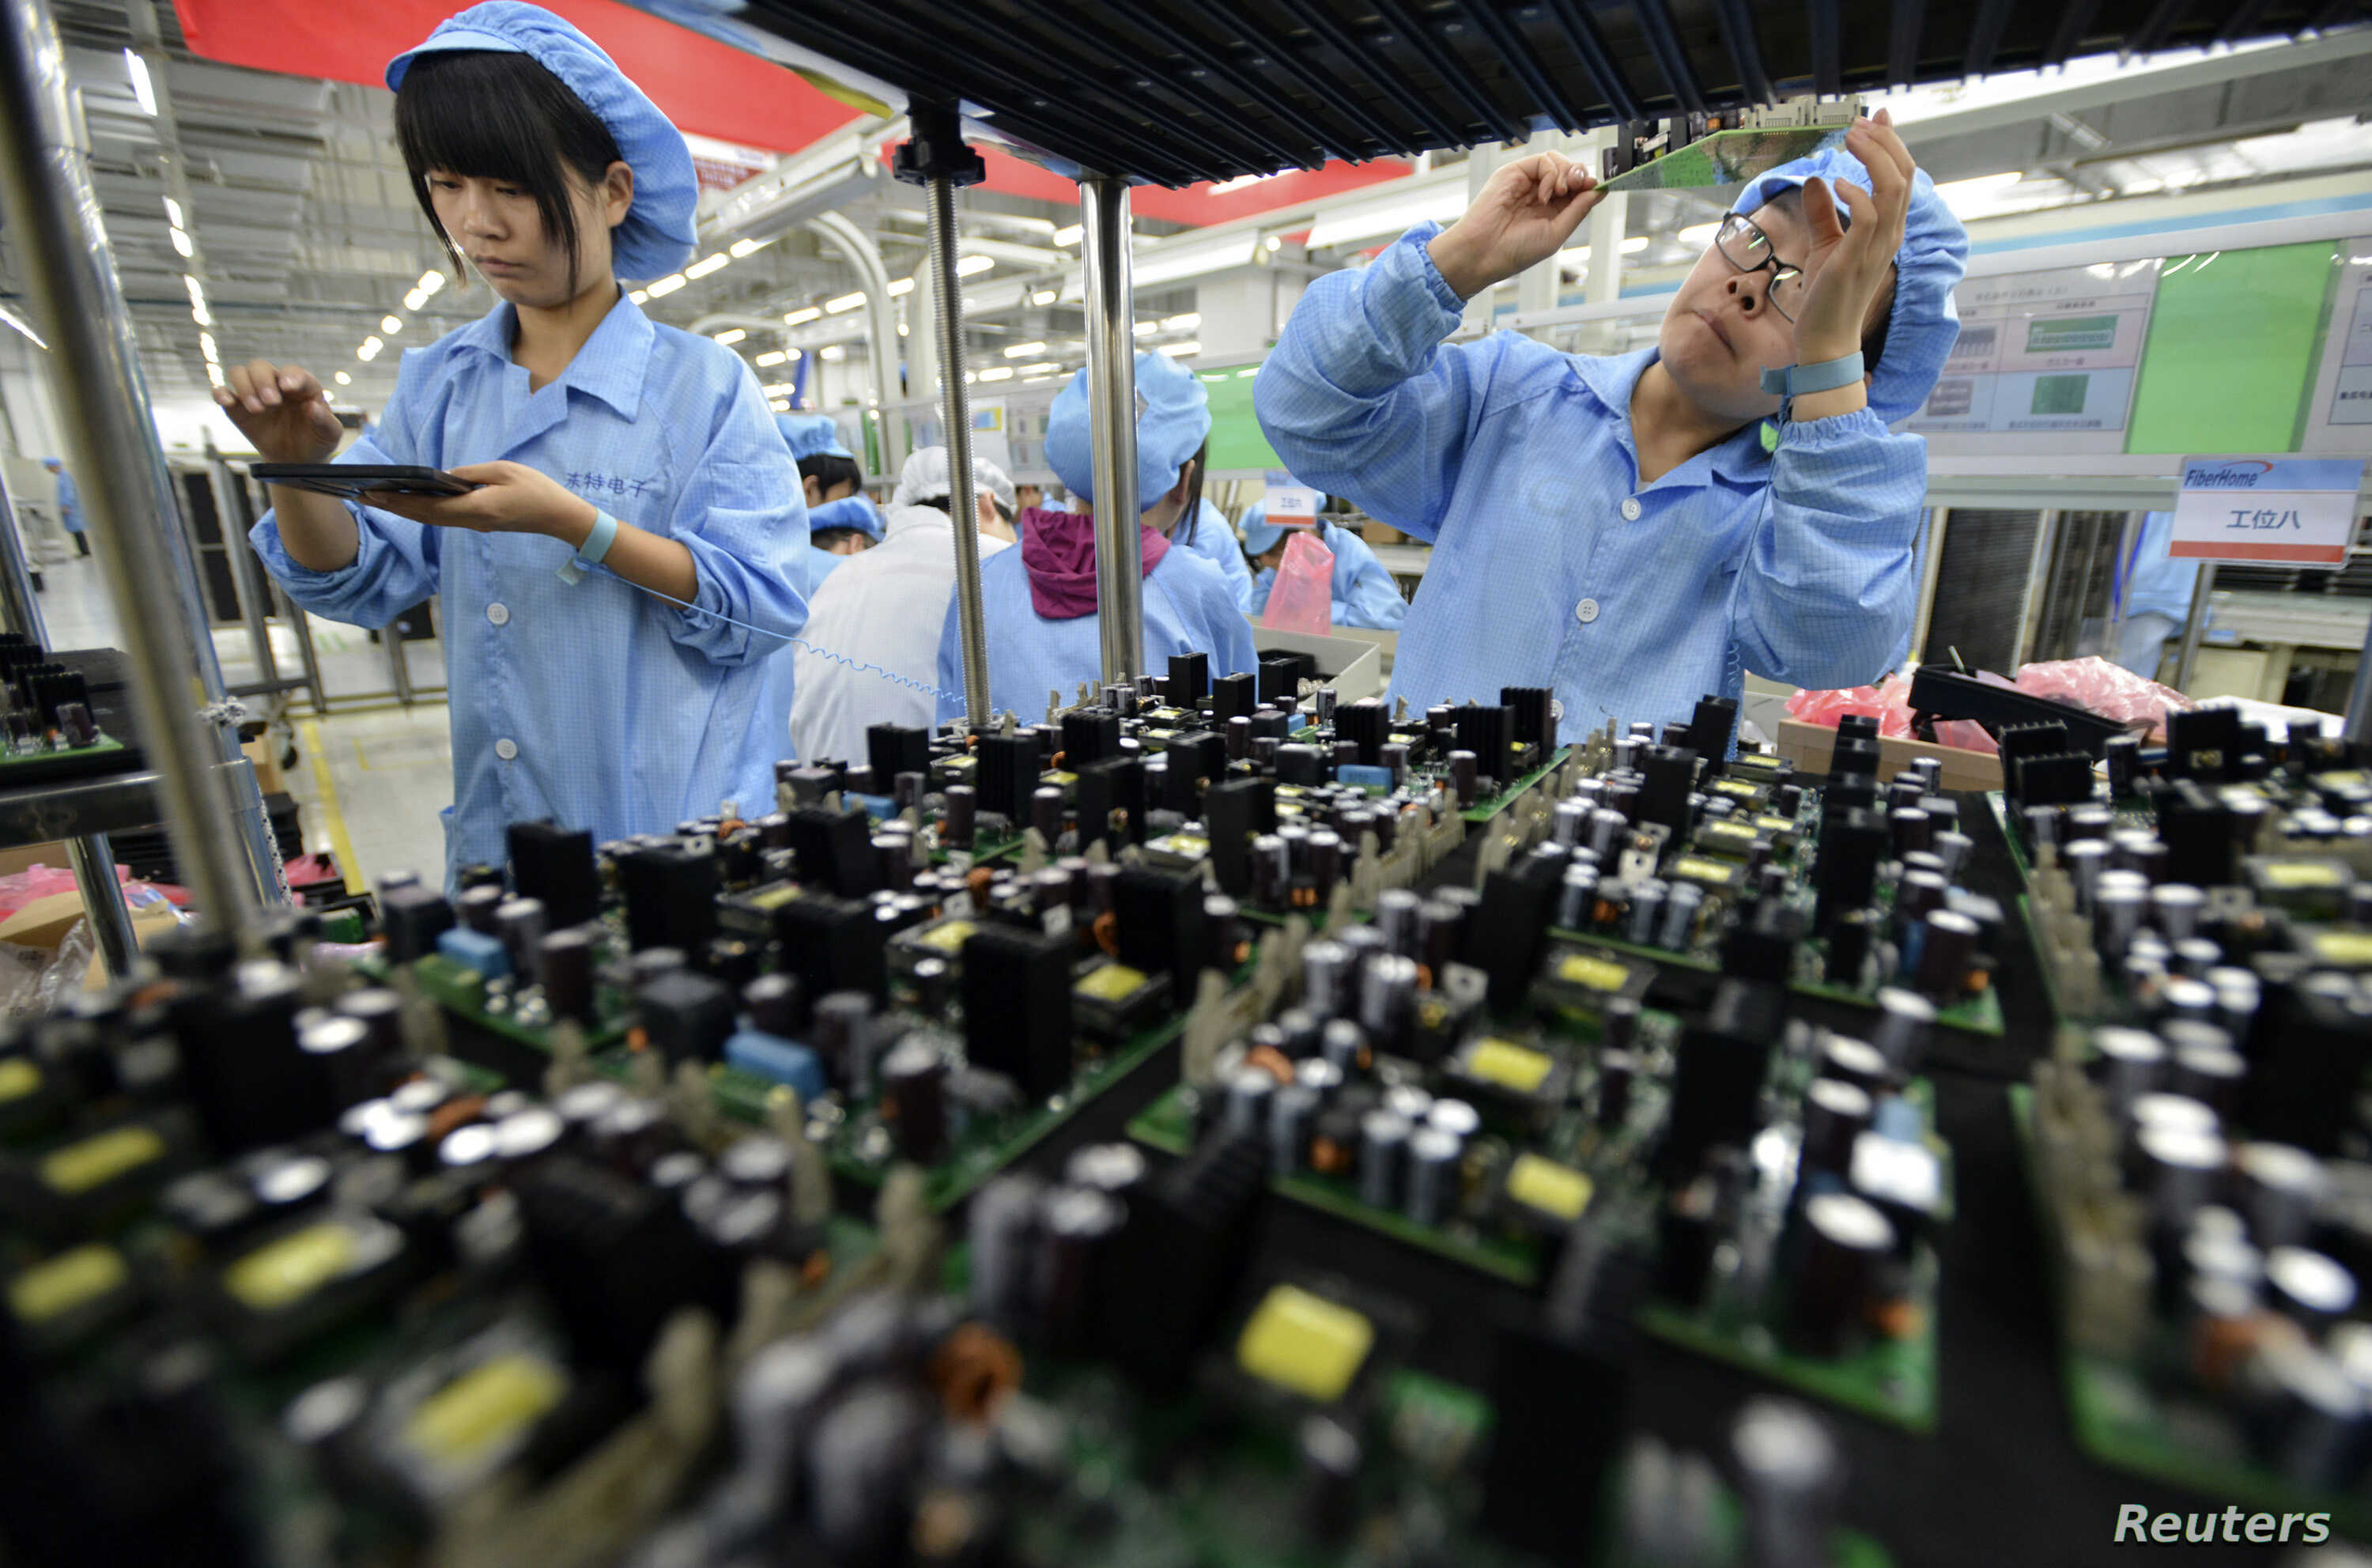 FILE - Employees work on a FiberHome Technologies Group factory production line in Wuhan, Hubei province, China, July 27, 2015. China relaxed its one-child policy Oct. 29, in part, to try to offset the country's shrinking workforce.